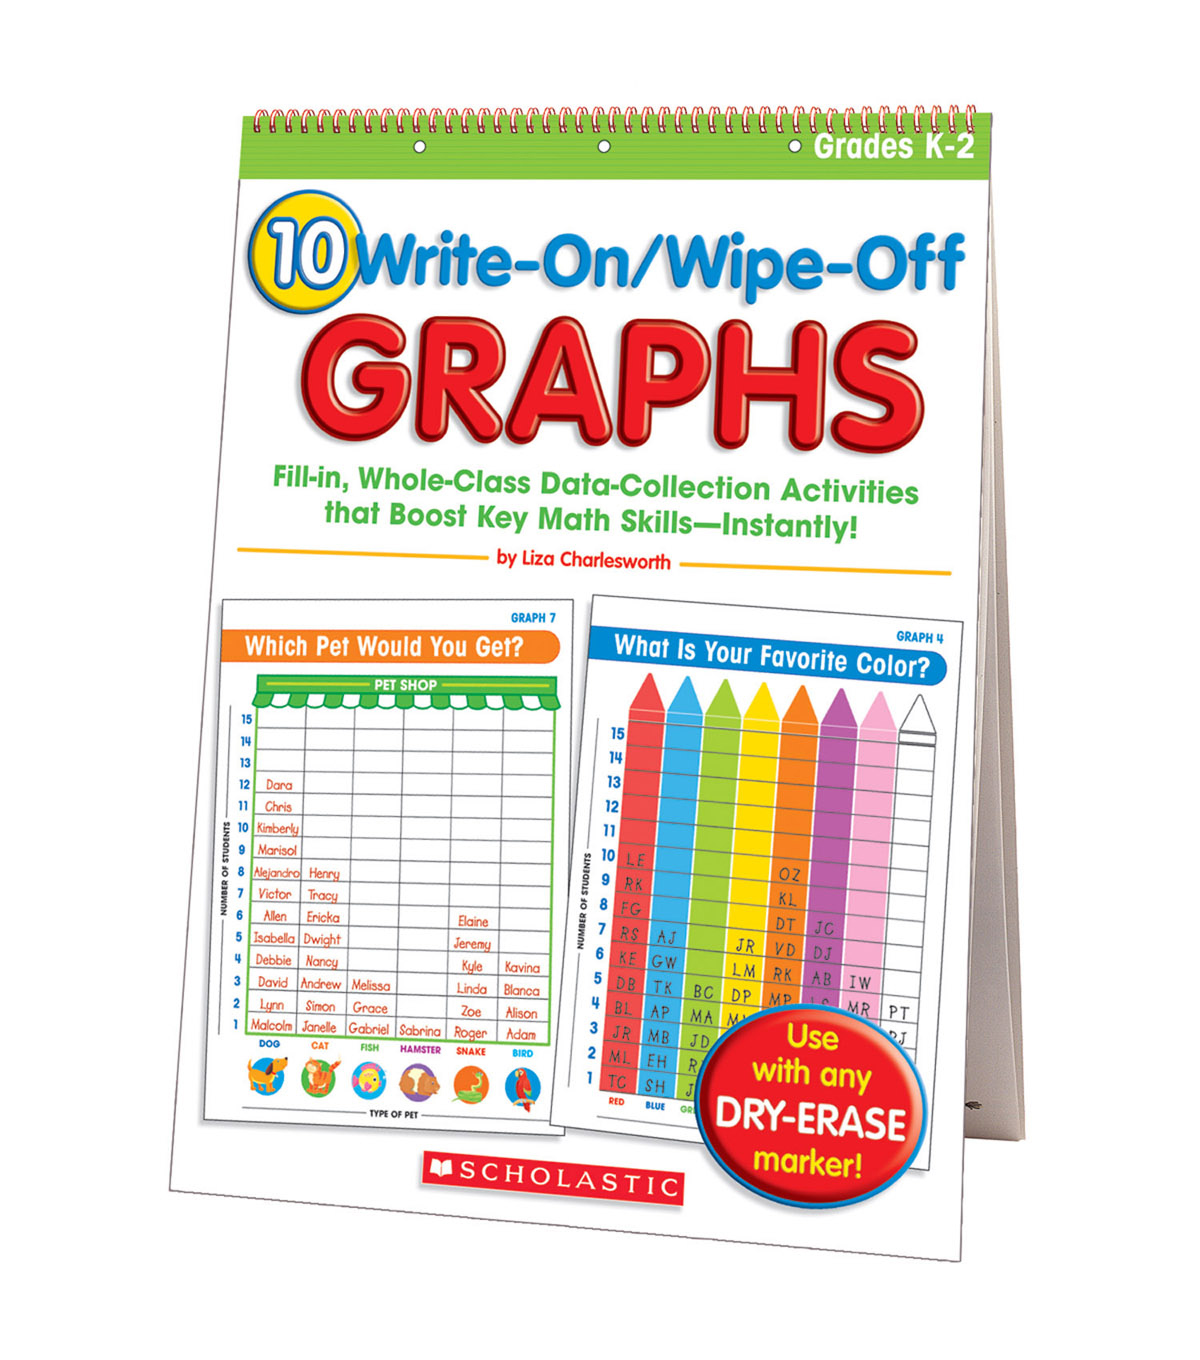 Scholastic 10 Write On/Wipe Off Graphs Flip Chart